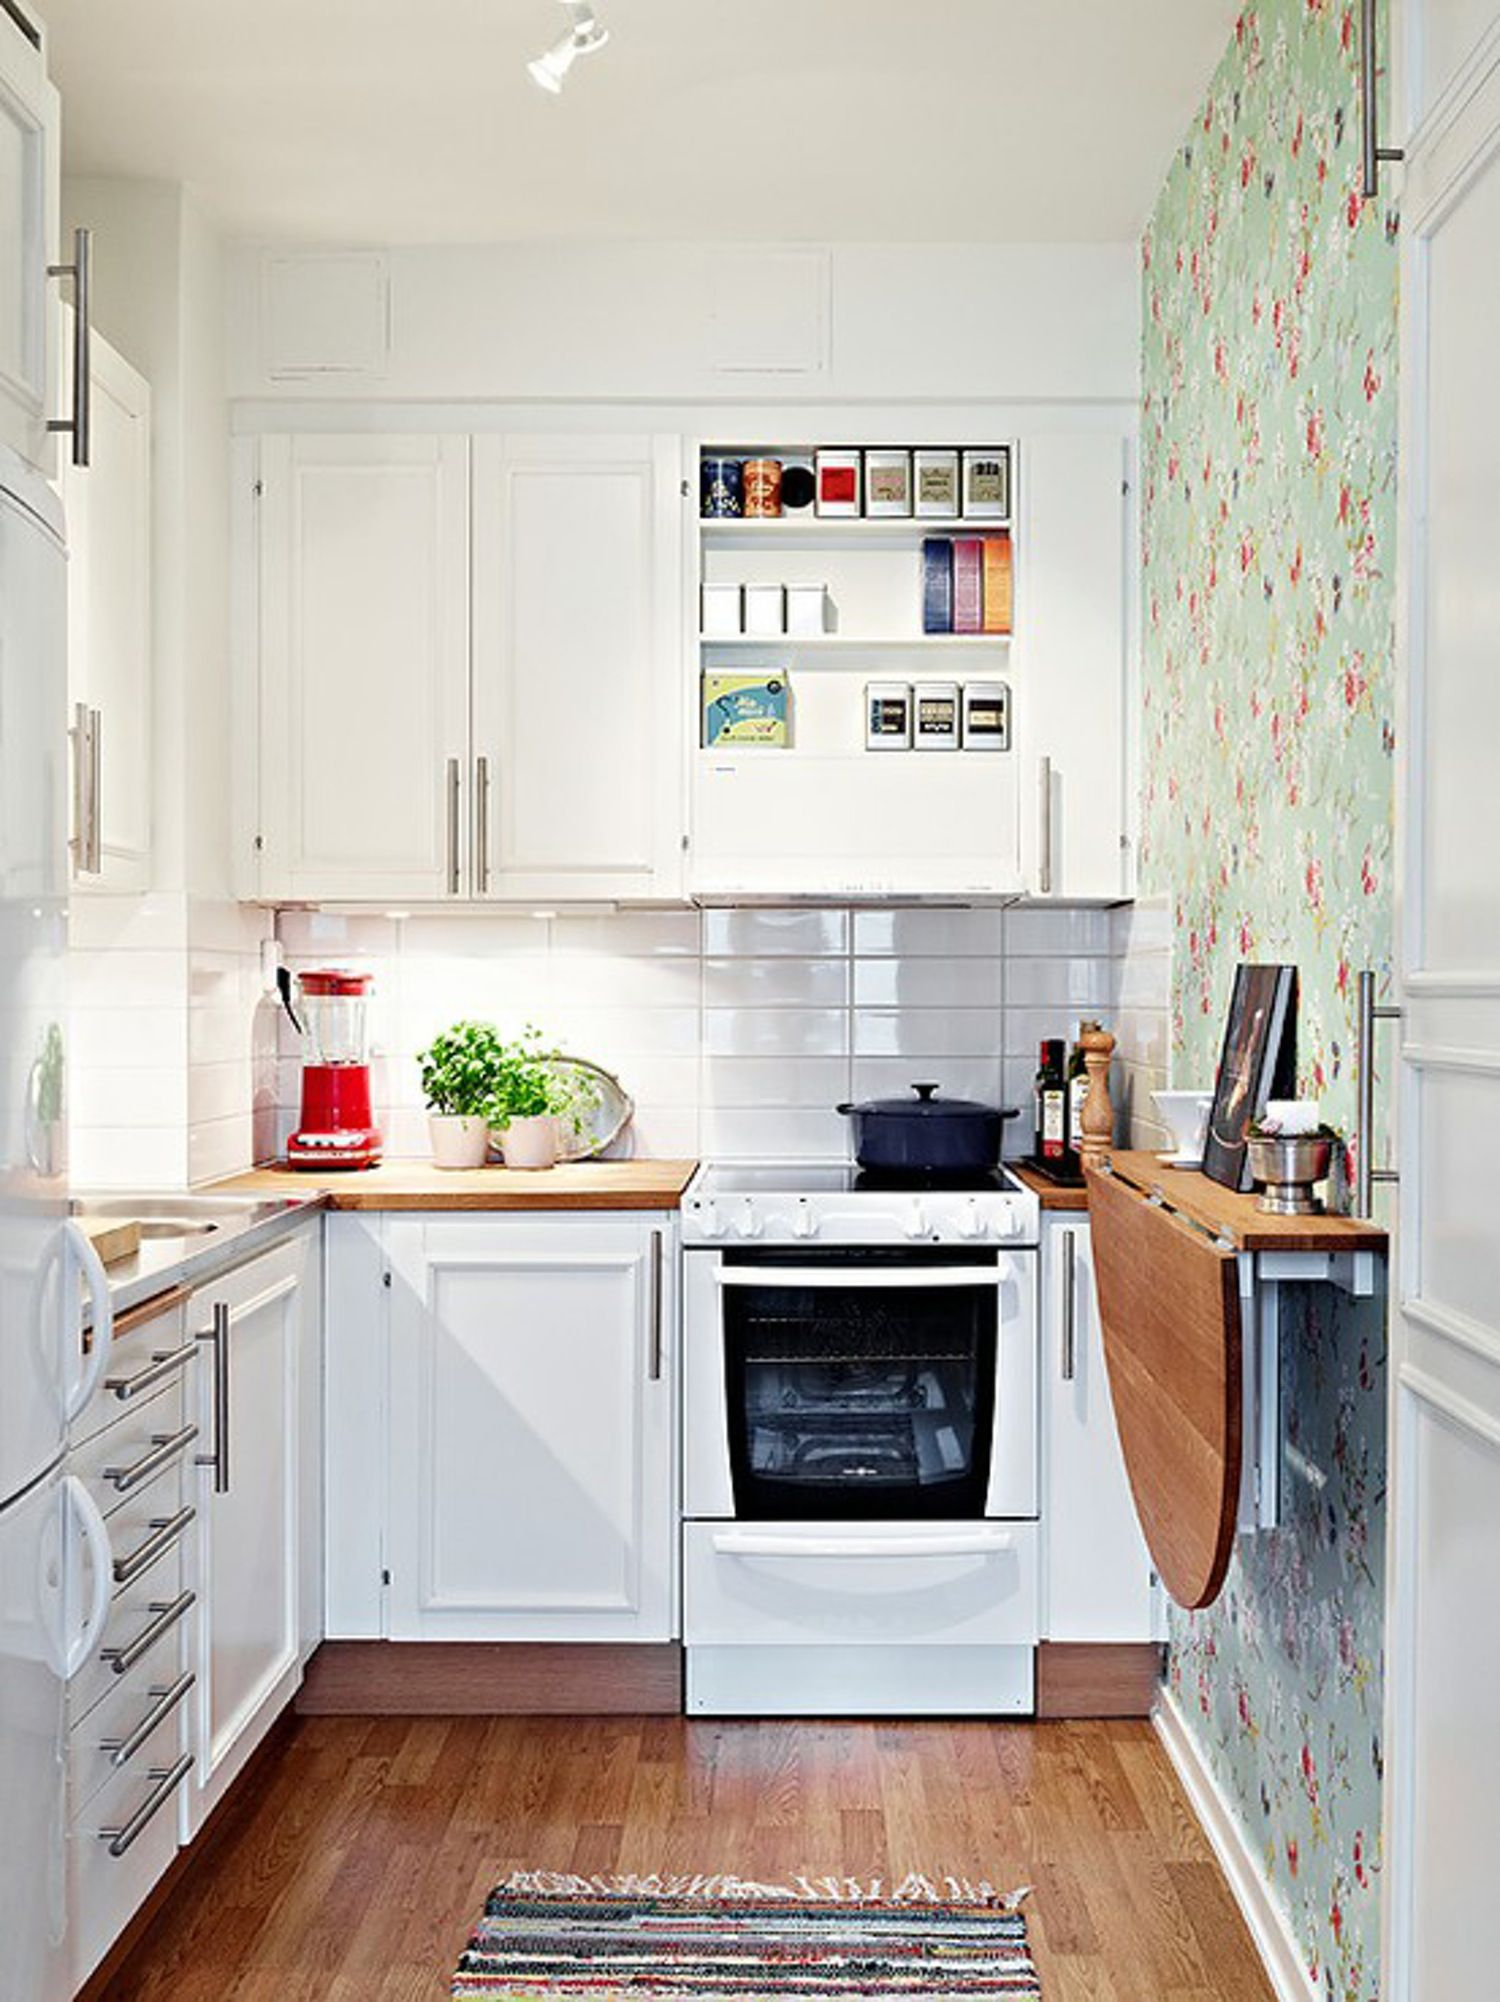 Making small kitchens bigger: That's how it works!